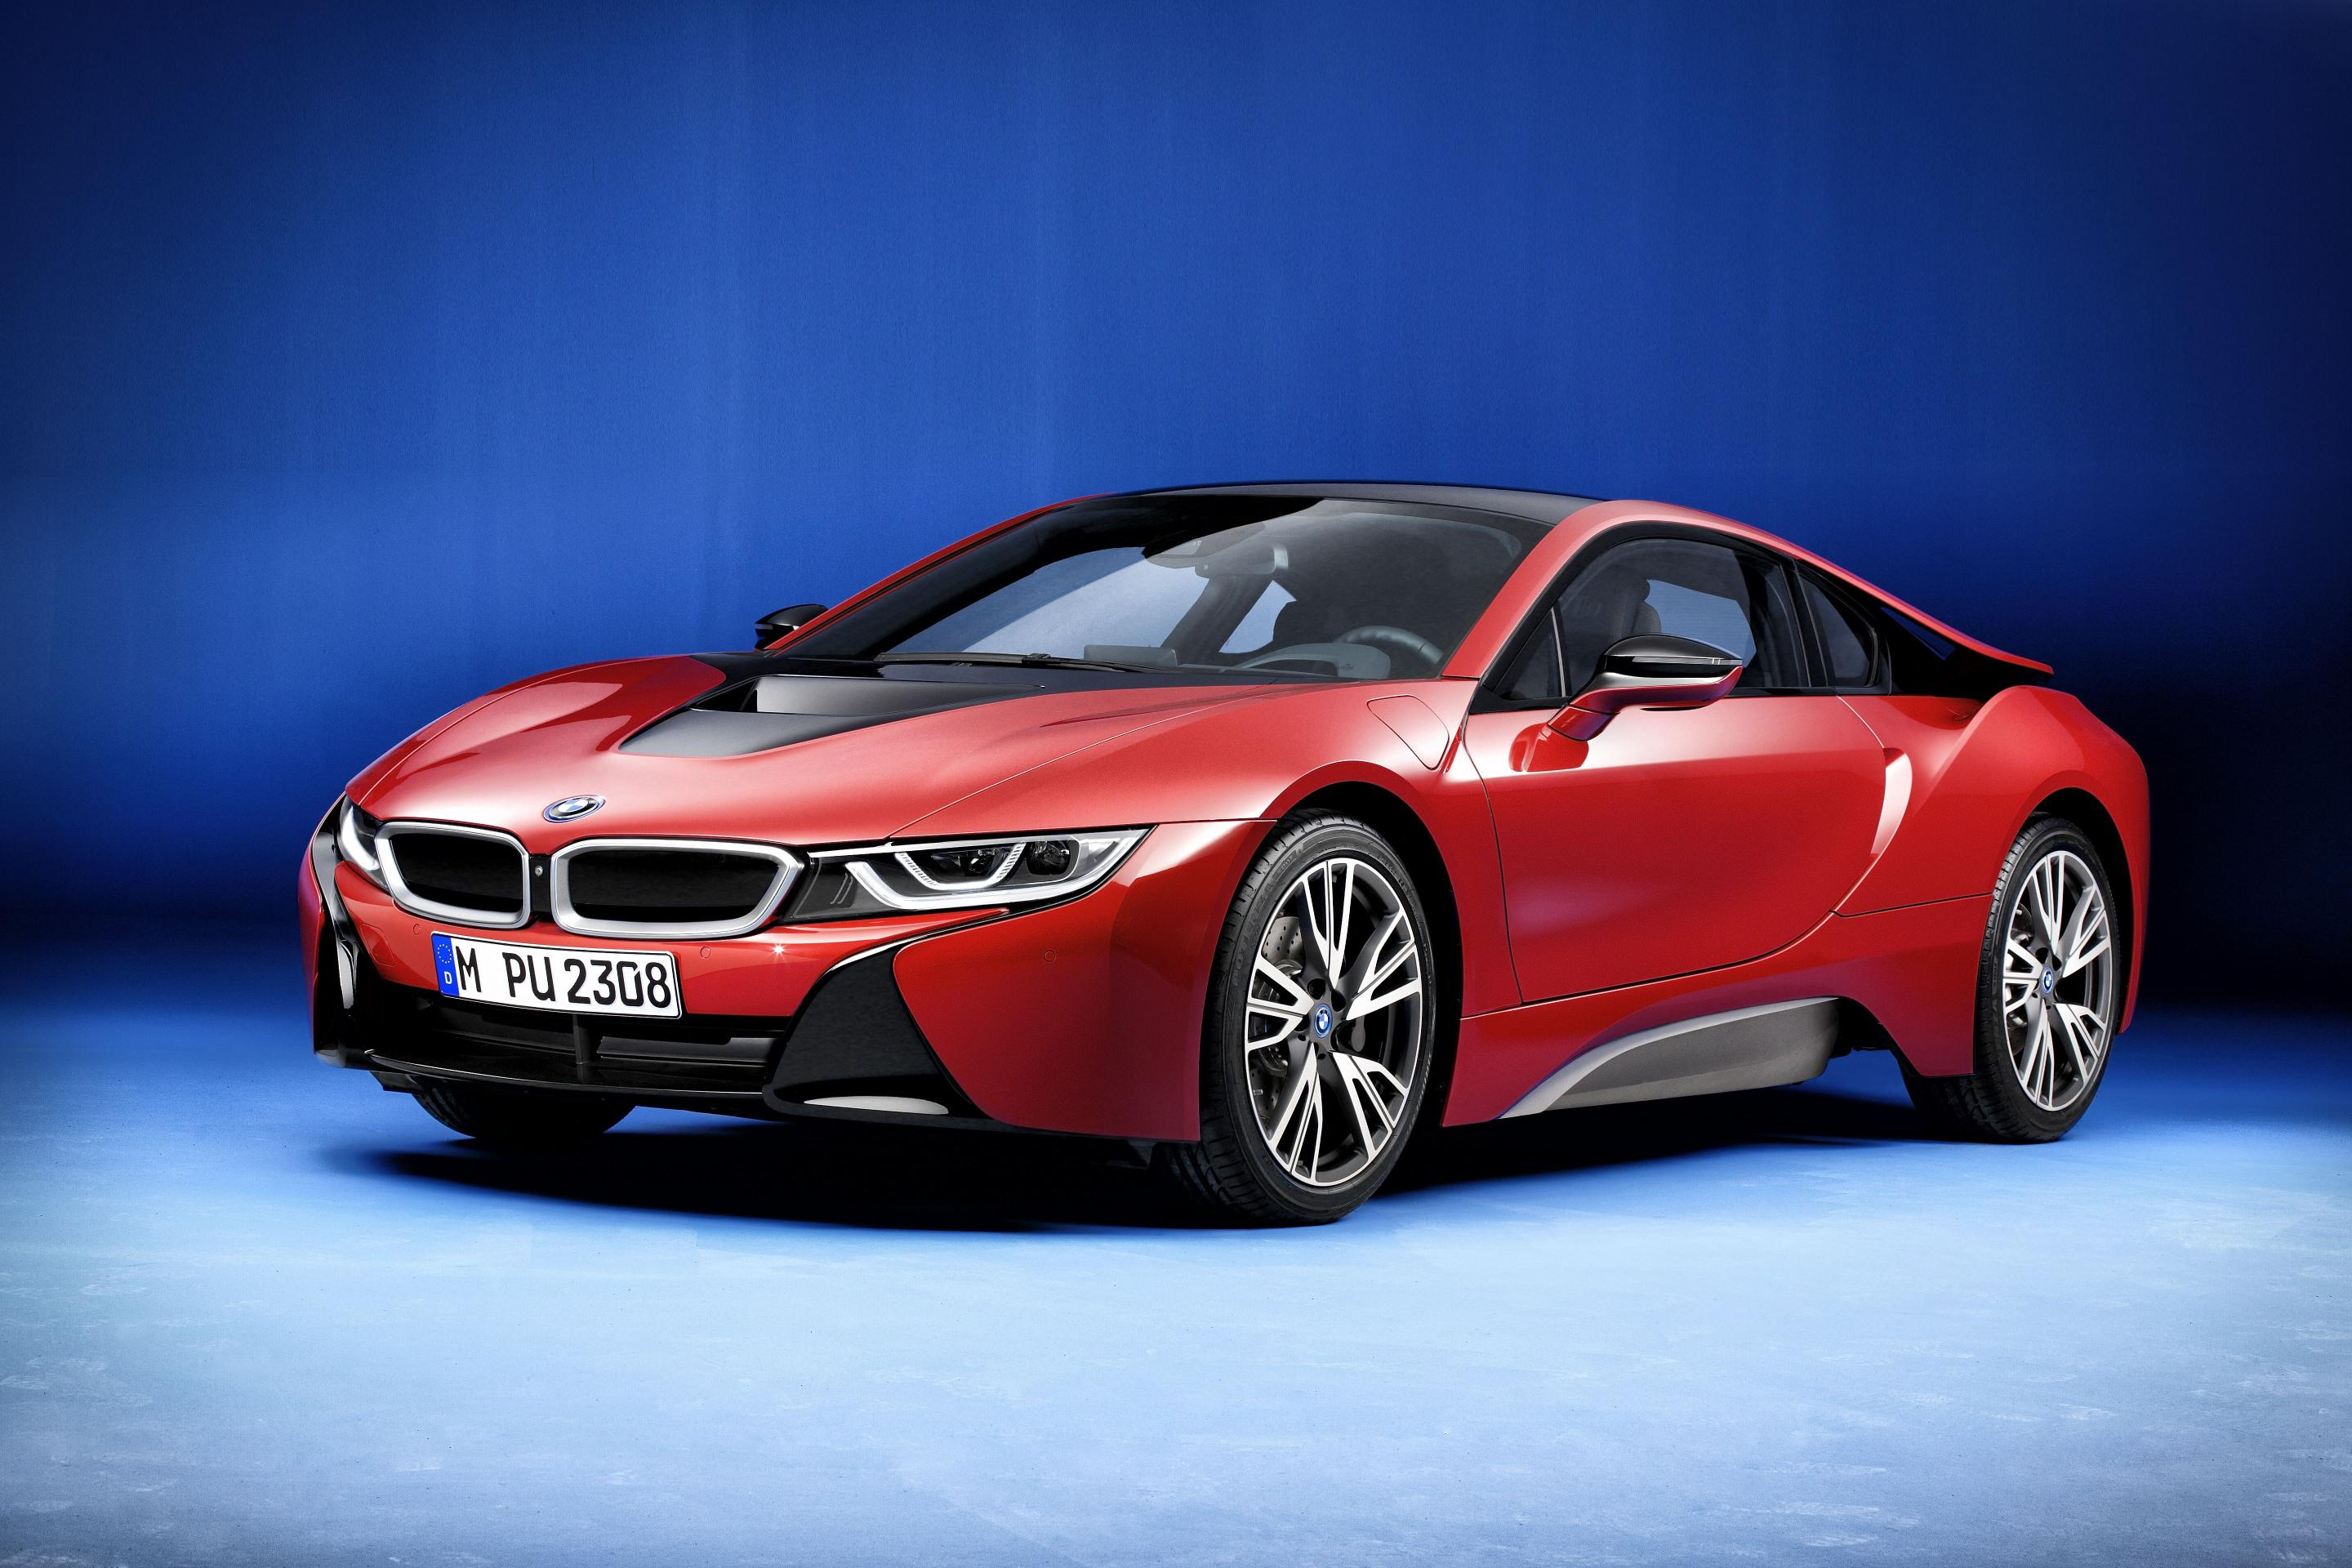 2016 BMW I8 Protonic Red Edition Supercar